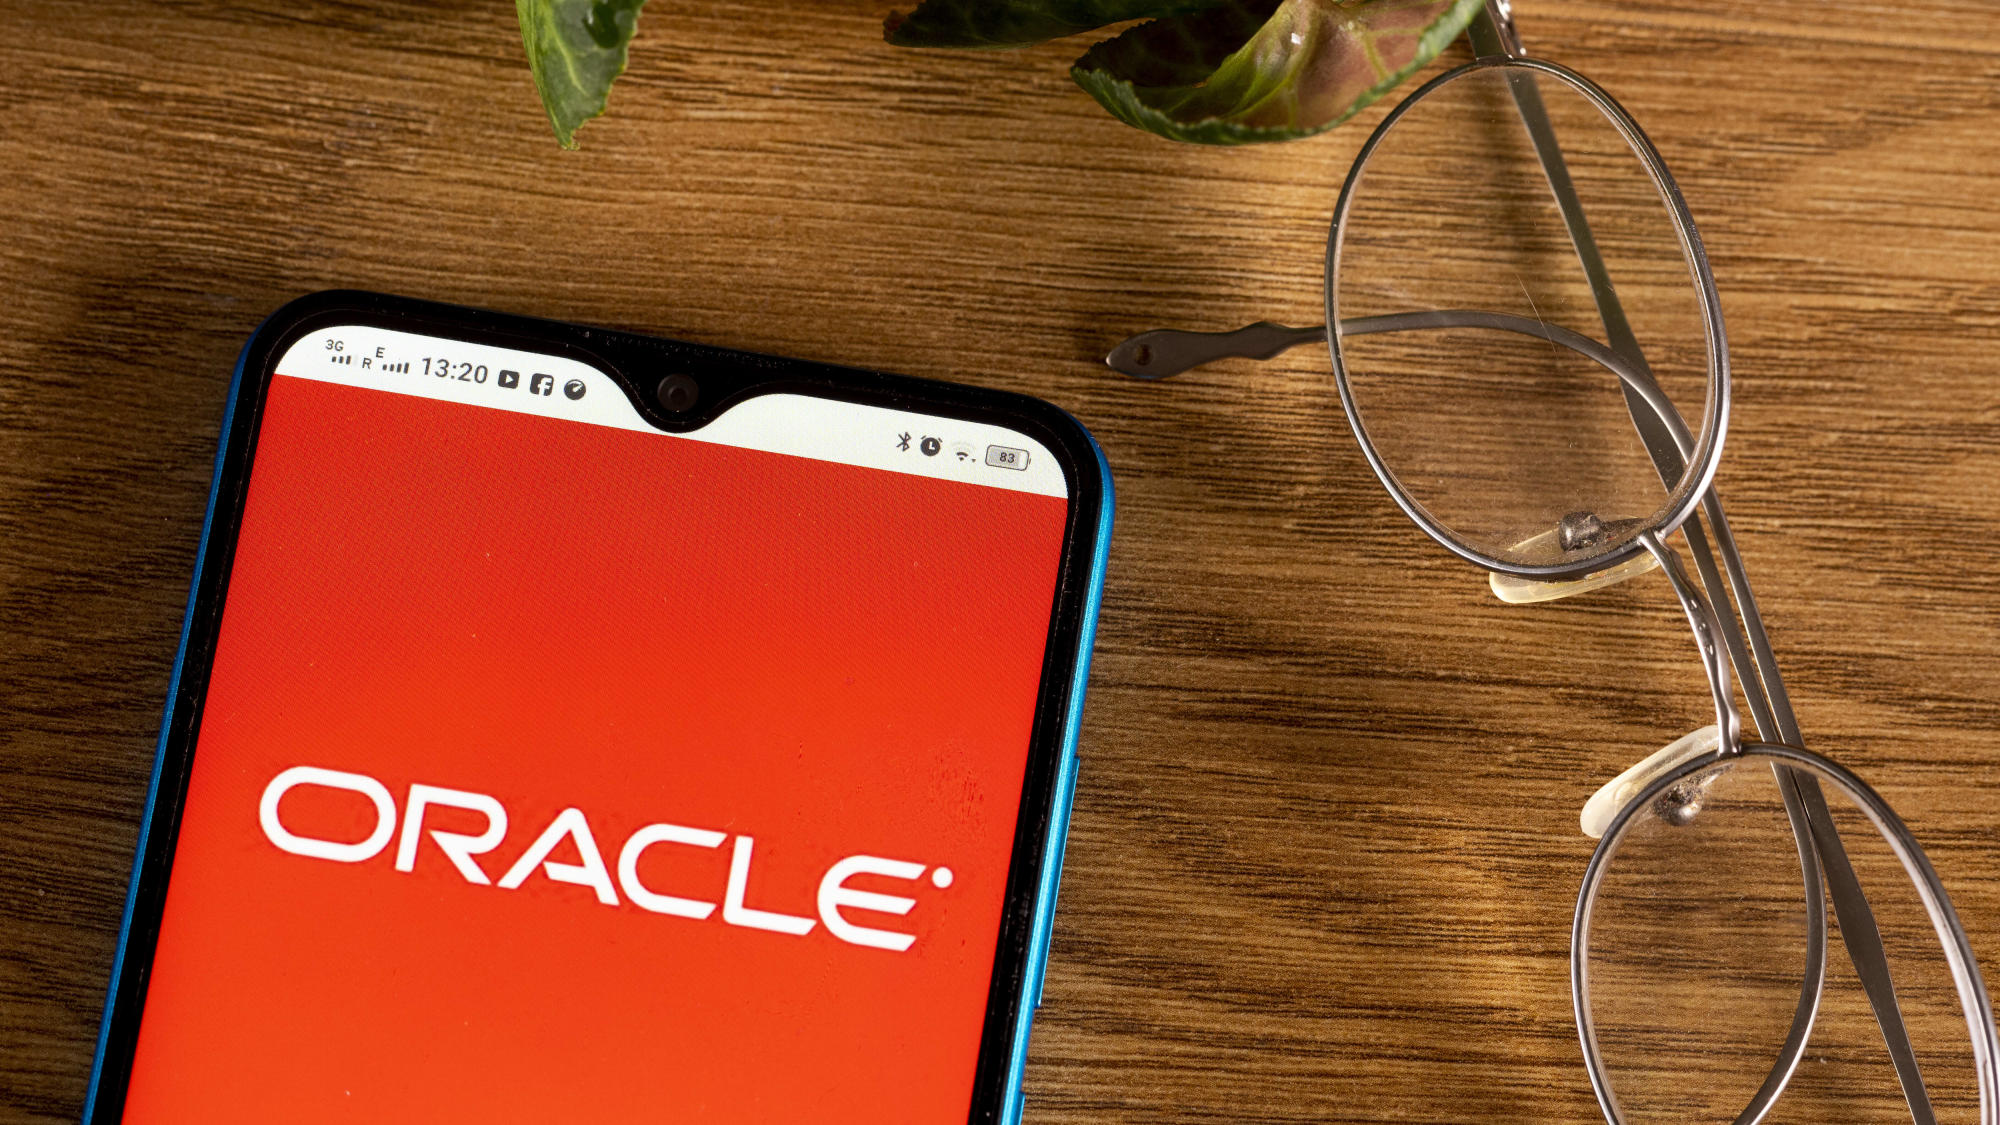 Oracle down after reporting earnings despite revenue, adjusted EPS beat - Yahoo Finance